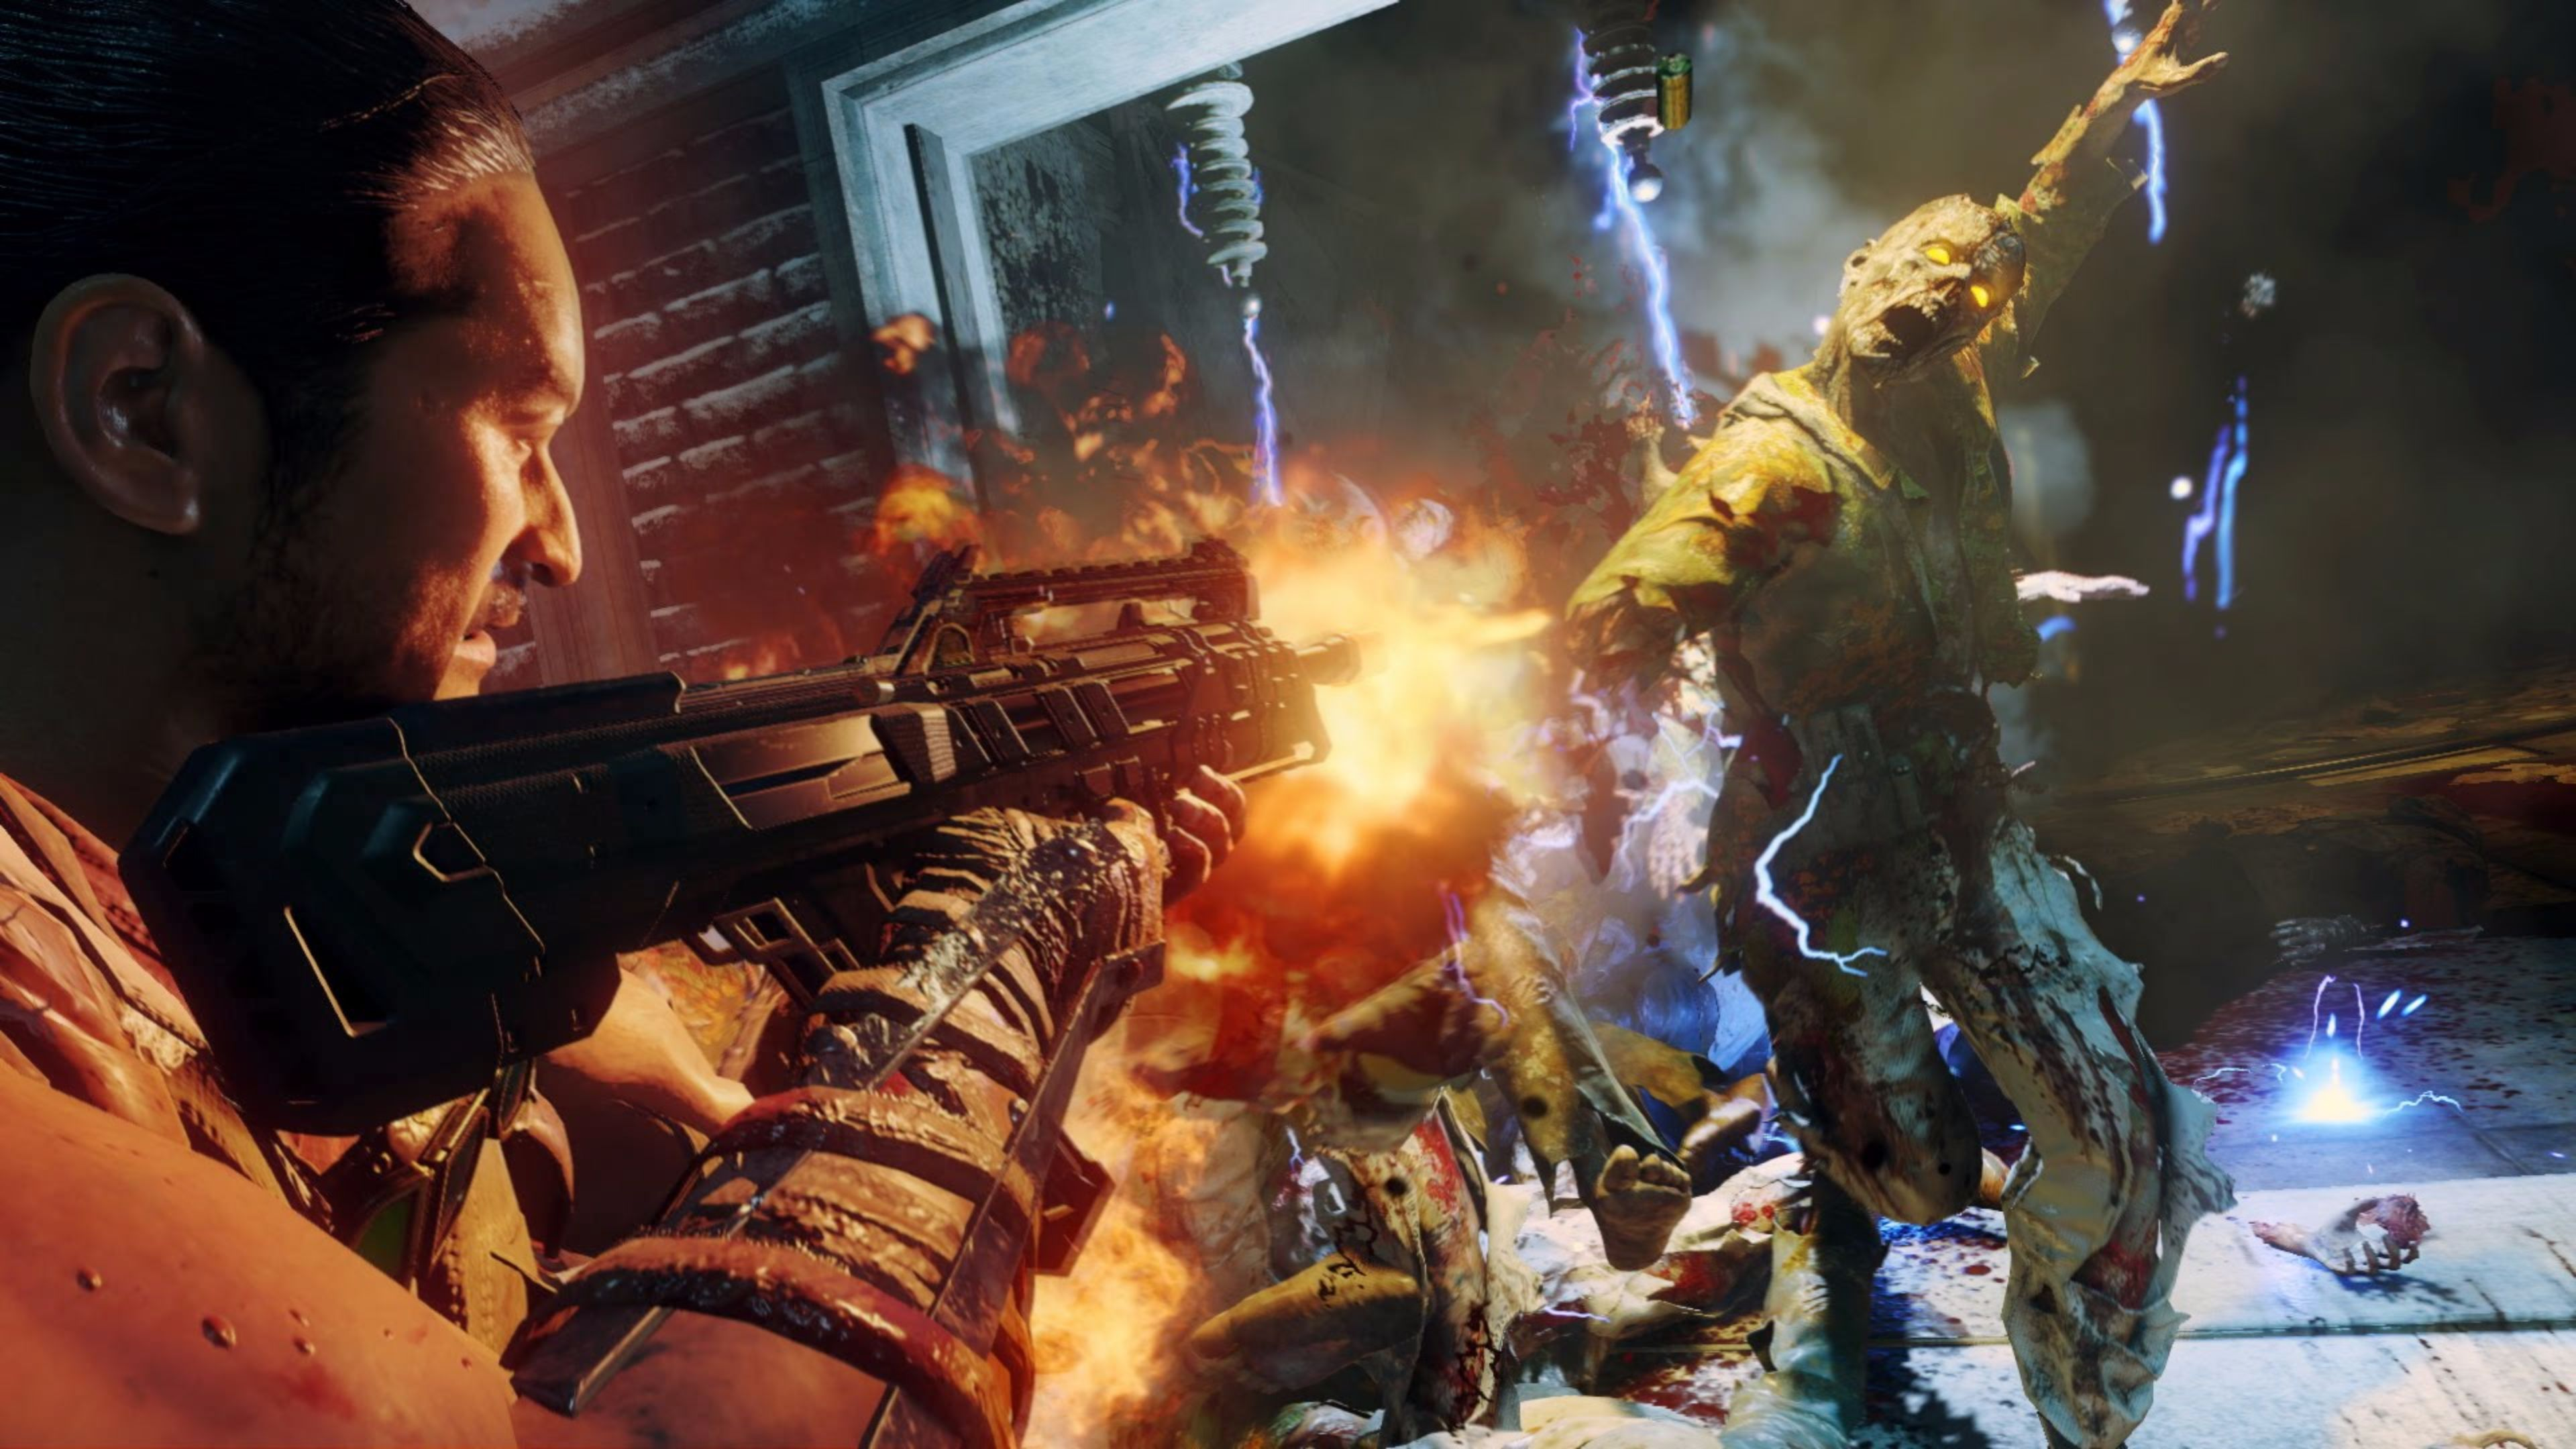 Zombie Invasion Call of Duty Black Ops 3 4K wallpaper